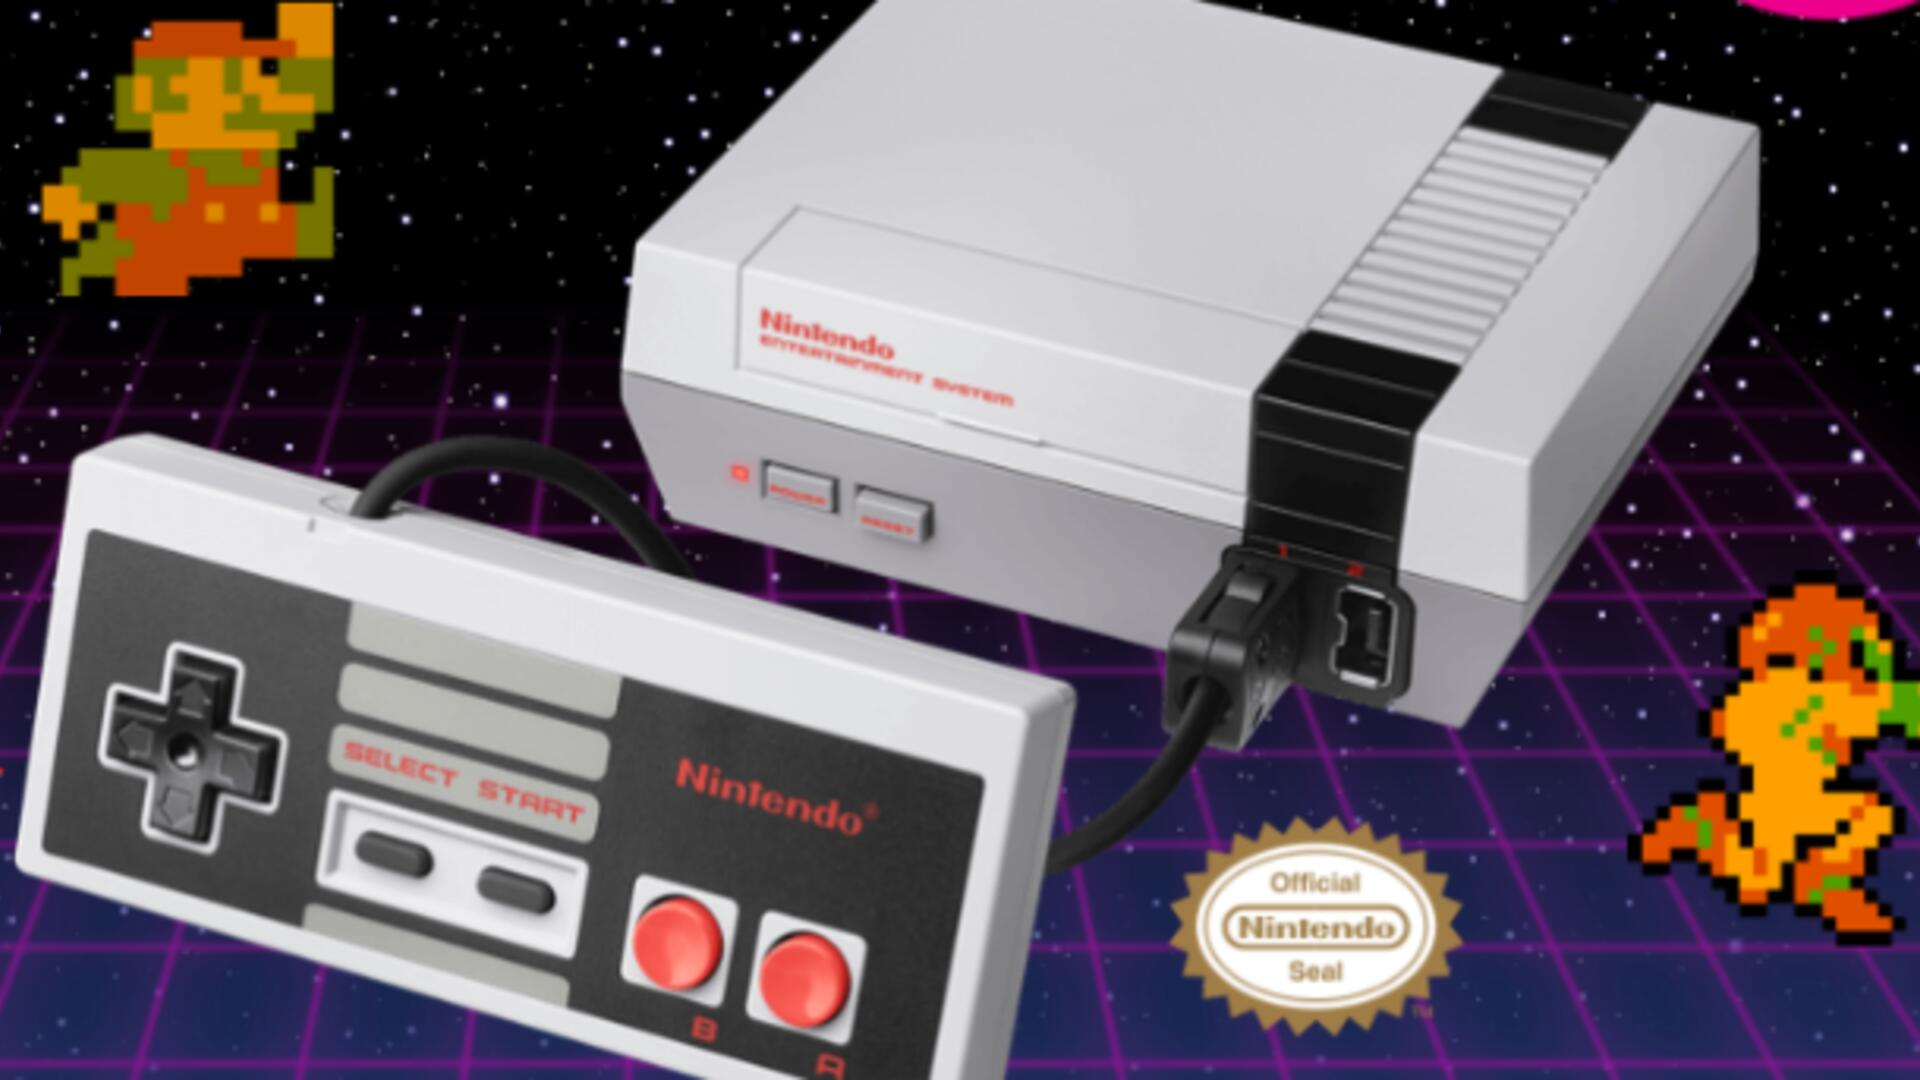 The NES Classic Getting New Release on June 29, And You May Even Get to Buy One This Time